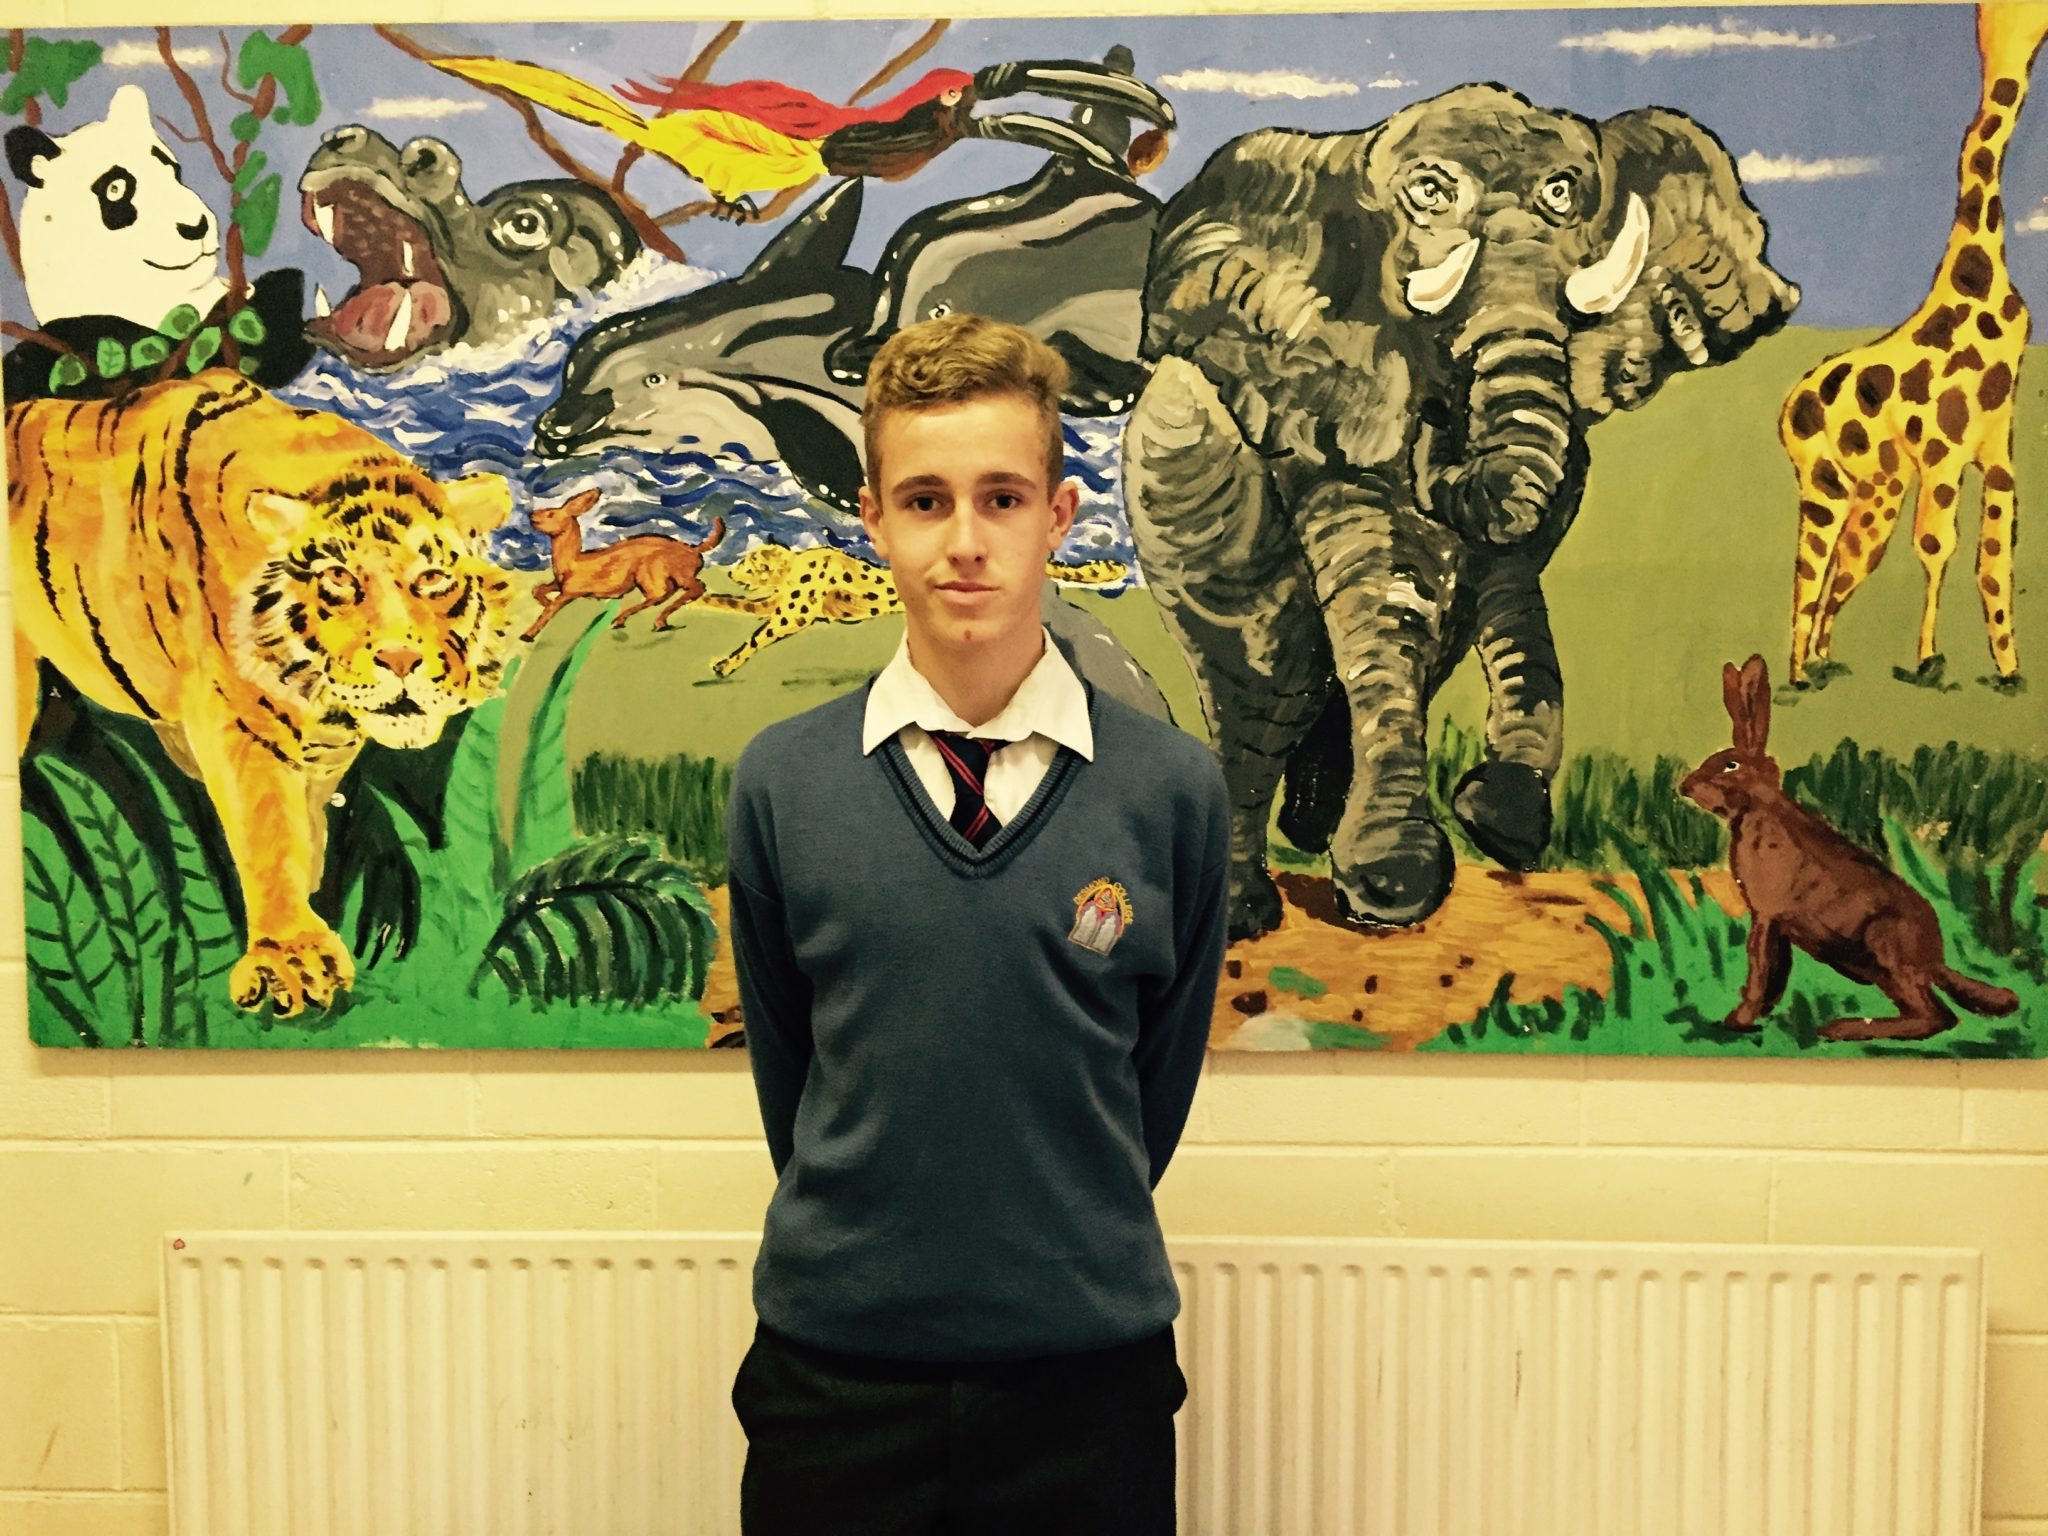 Oct 2015: Desmond College students Achieve Outstanding Sporting Success by Being Accepted onto the Irish Squad: Cillian Brouder and Mikey Conlon